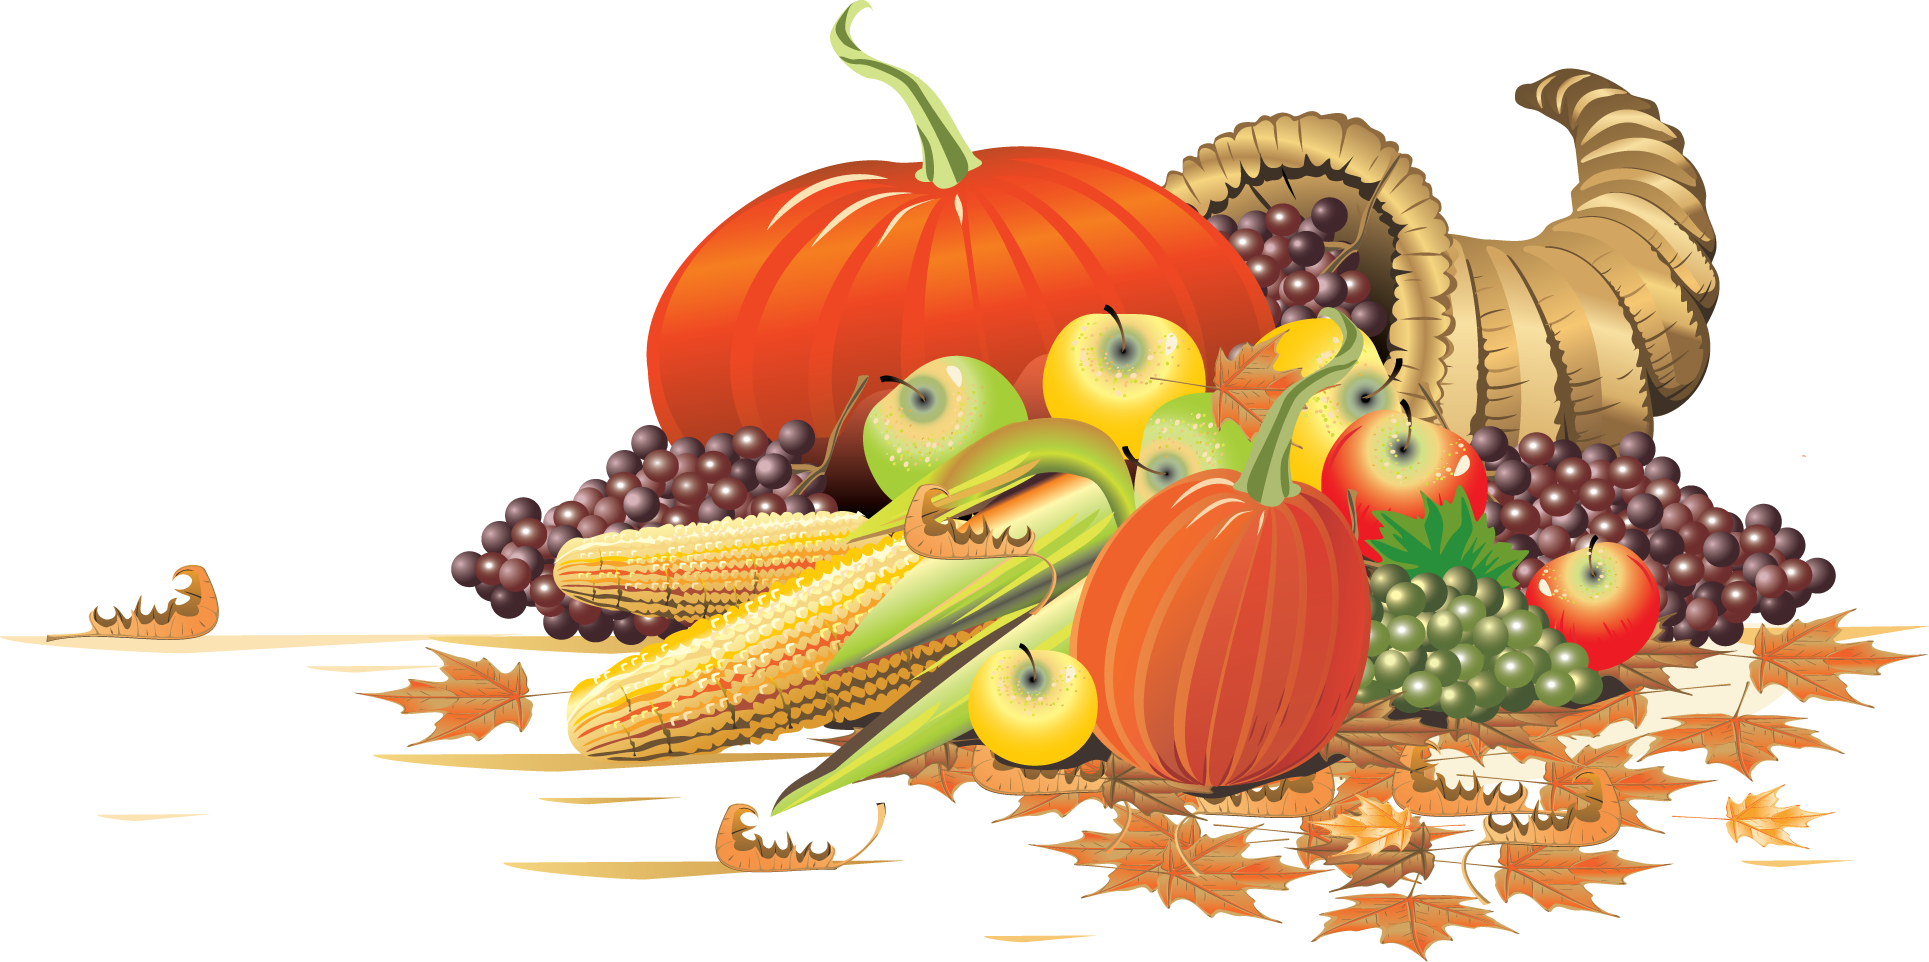 Thanksgiving week clipart graphic free download Parish Office Closed - Wed-Fri this week for Thanksgiving! - Saint ... graphic free download